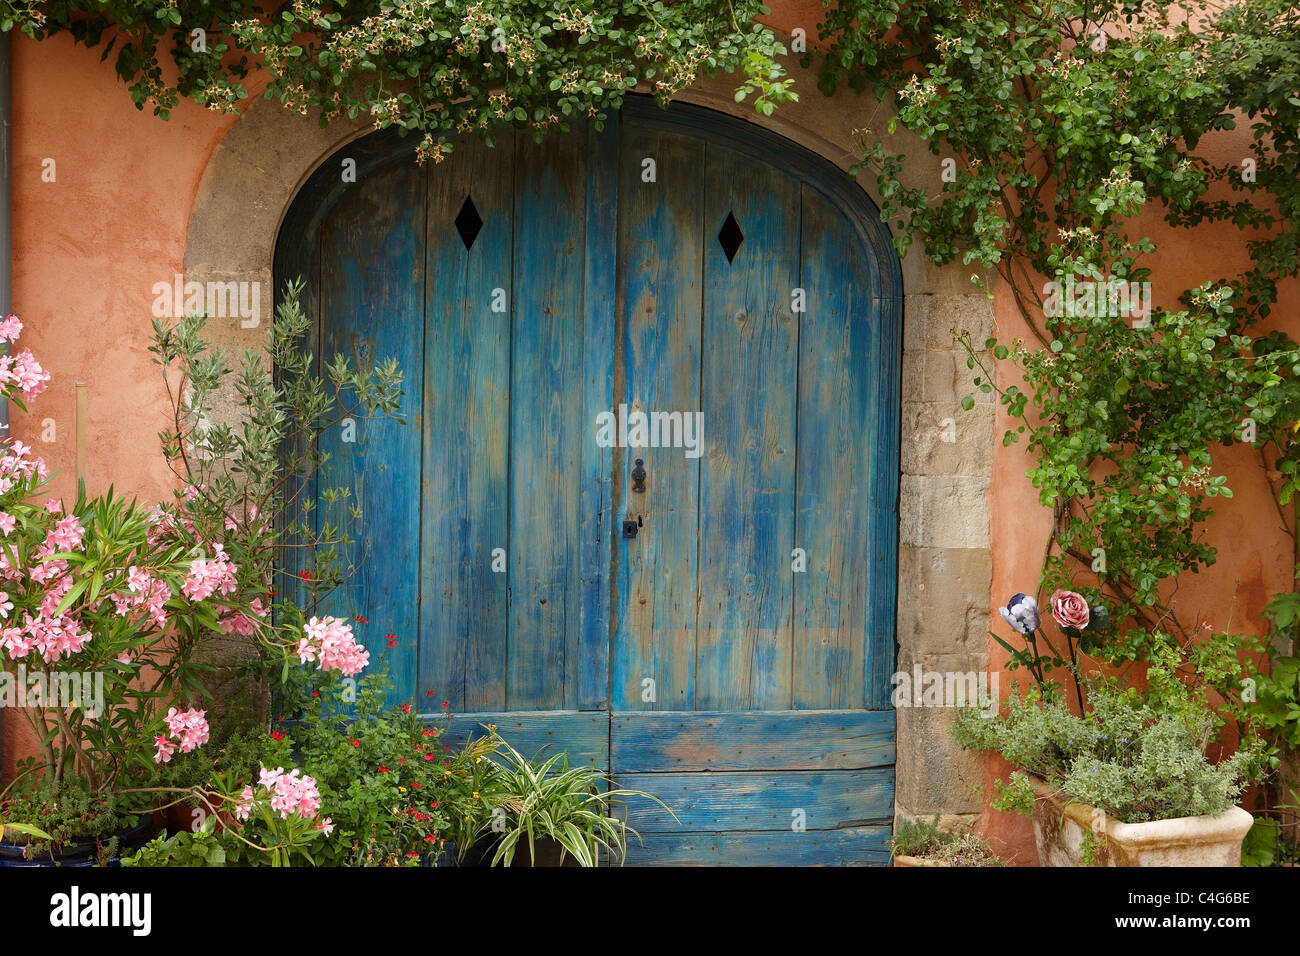 a doorway in Saint-Félix-Lauragais, Haute-Garonne, Midi-Pyrenees, France - Stock Image